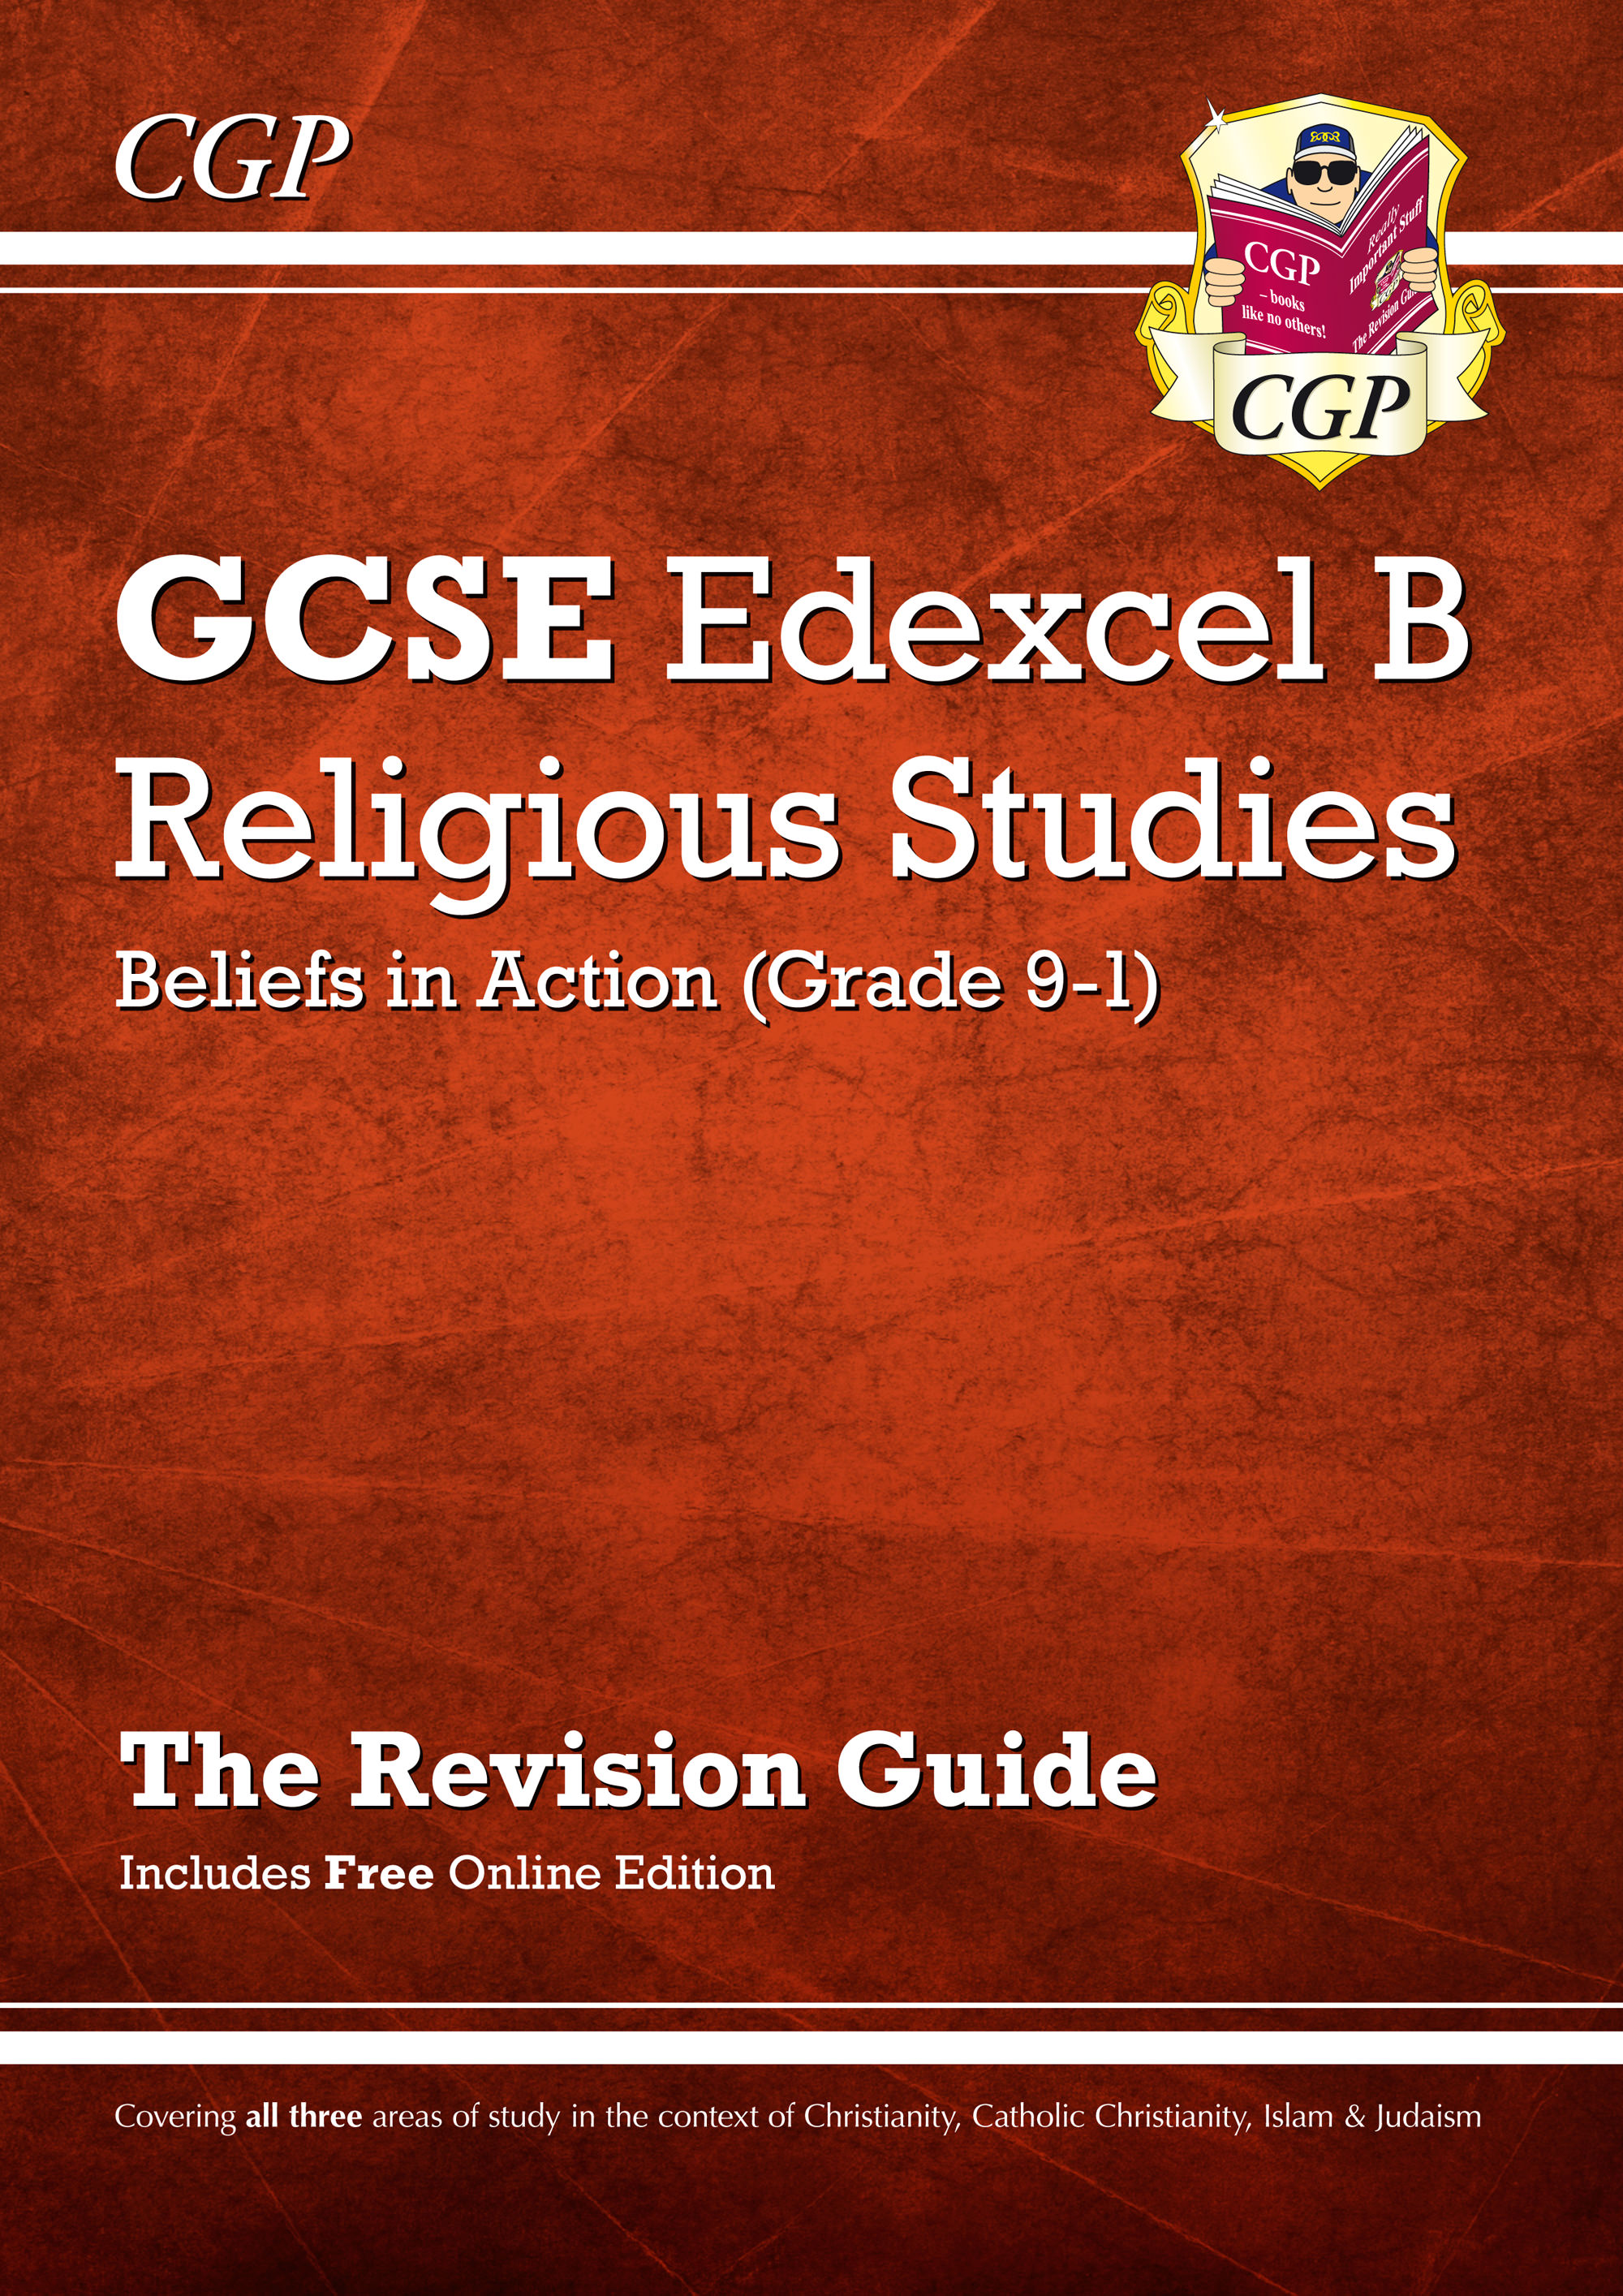 RER41 - Grade 9-1 GCSE Religious Studies: Edexcel B Beliefs in Action Revision Guide with Online Edi